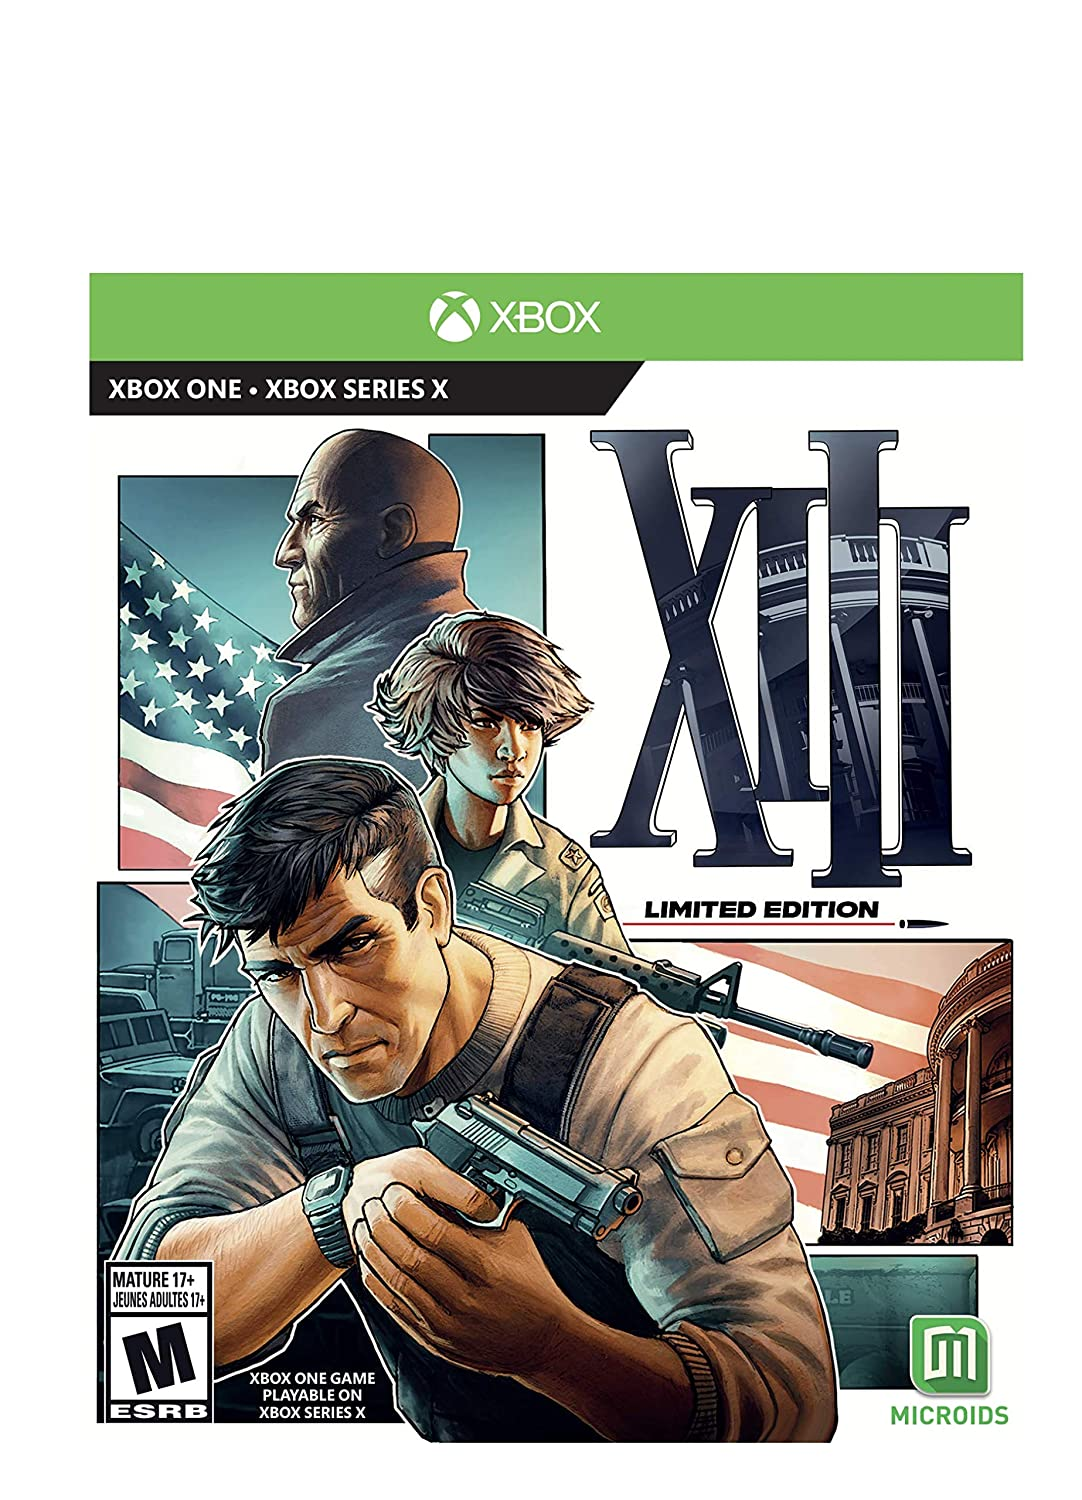 XIII: Department store Limited Edition Xb1 One - 2021 autumn and winter new Xbox